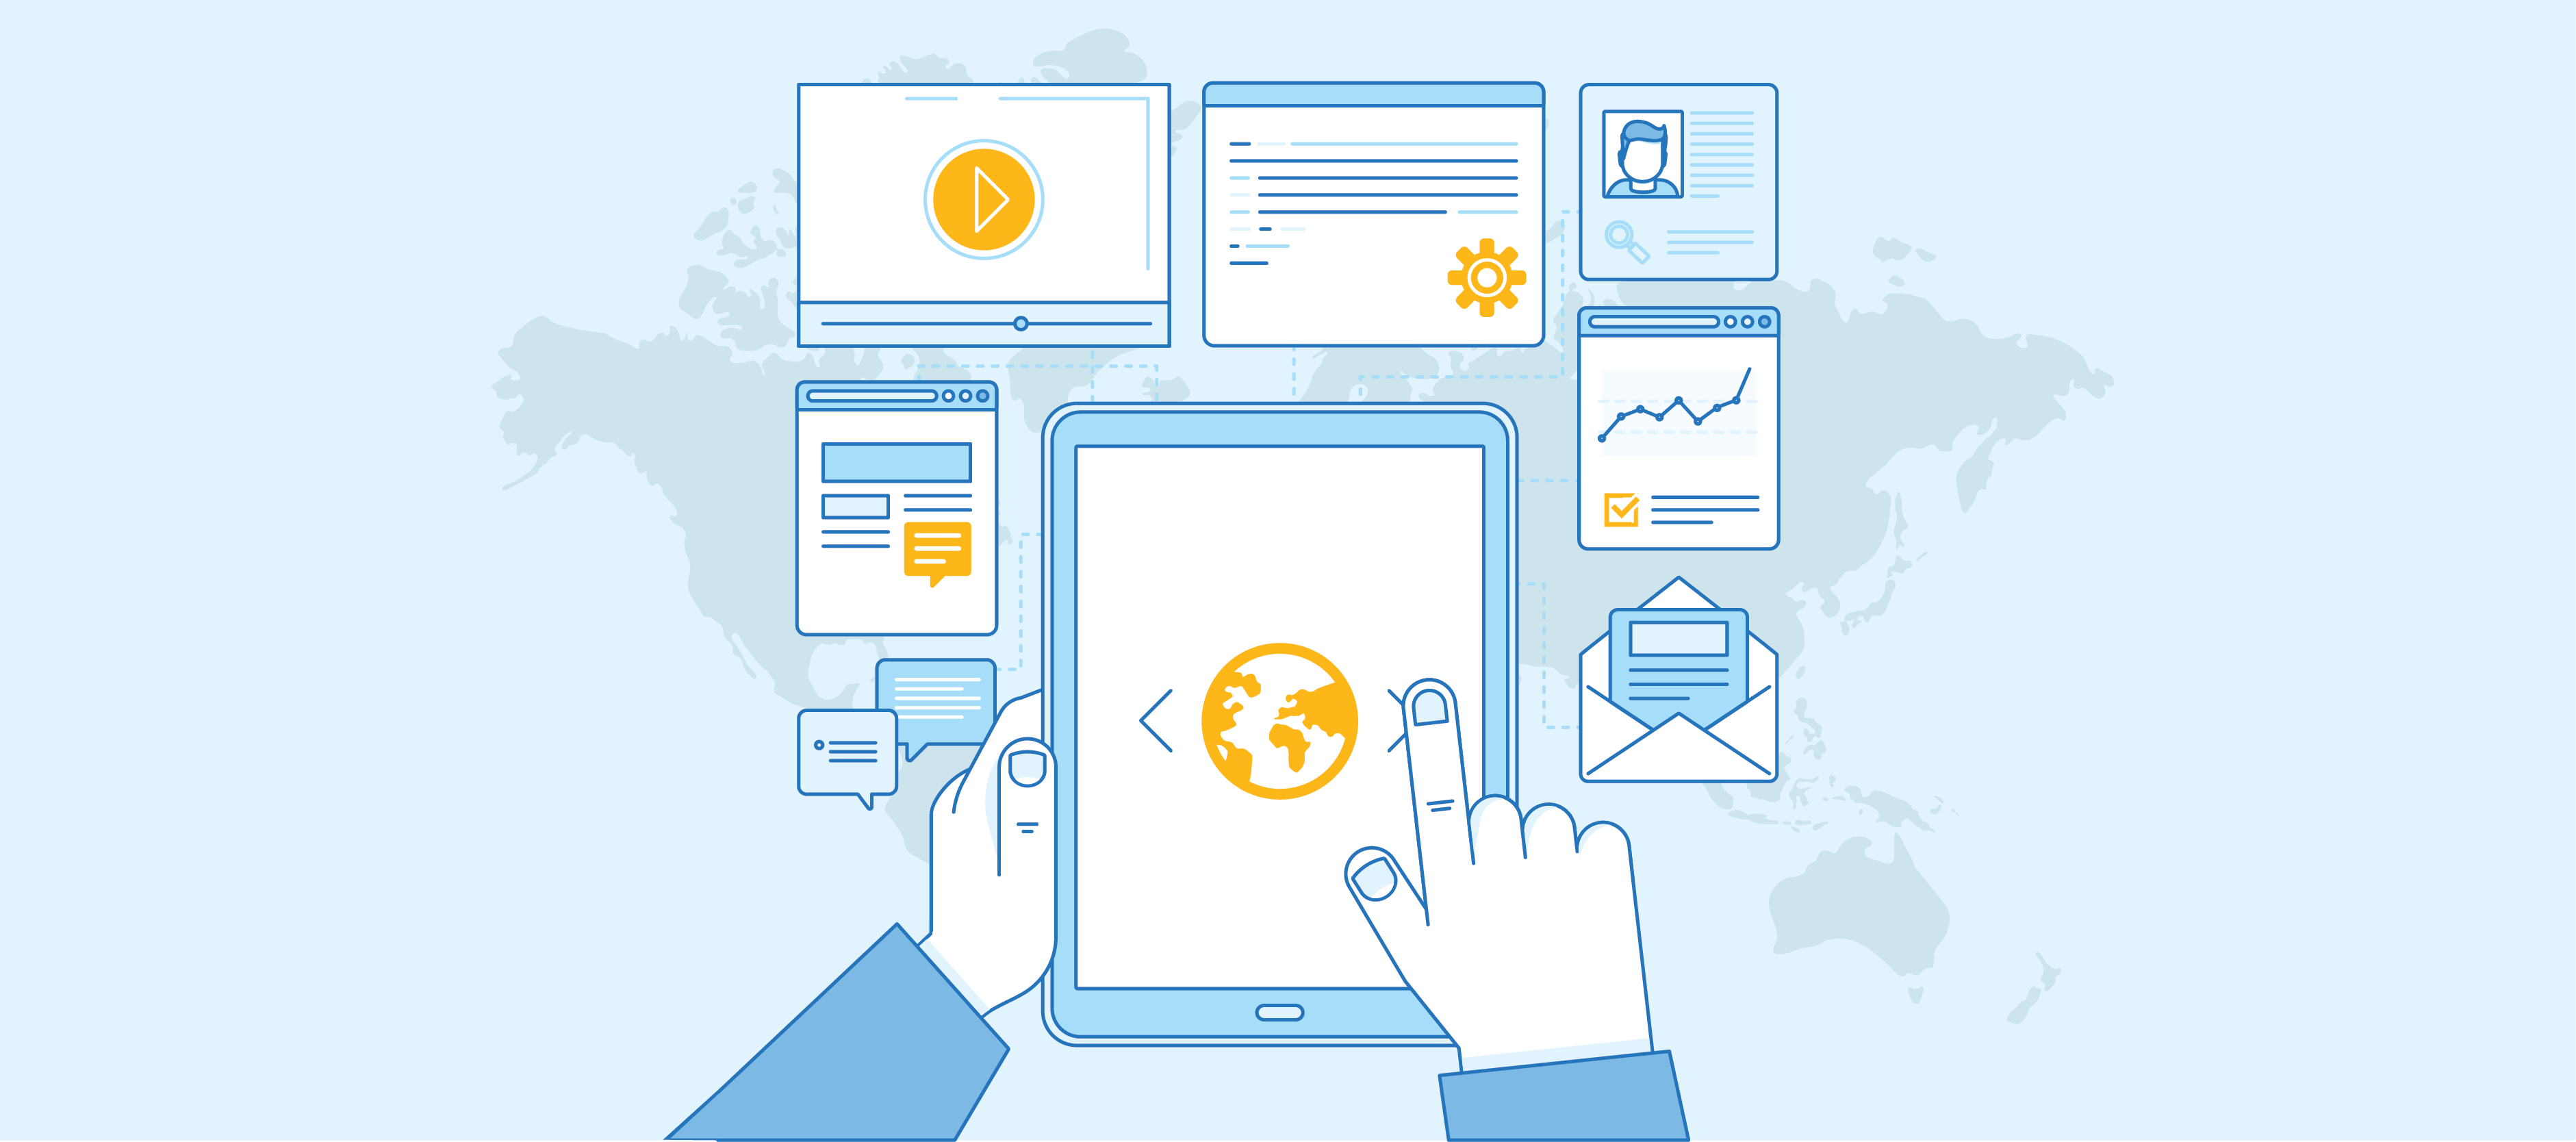 Engaging Communication - Creating Visibility For Enterprise Data Through Concept Videos